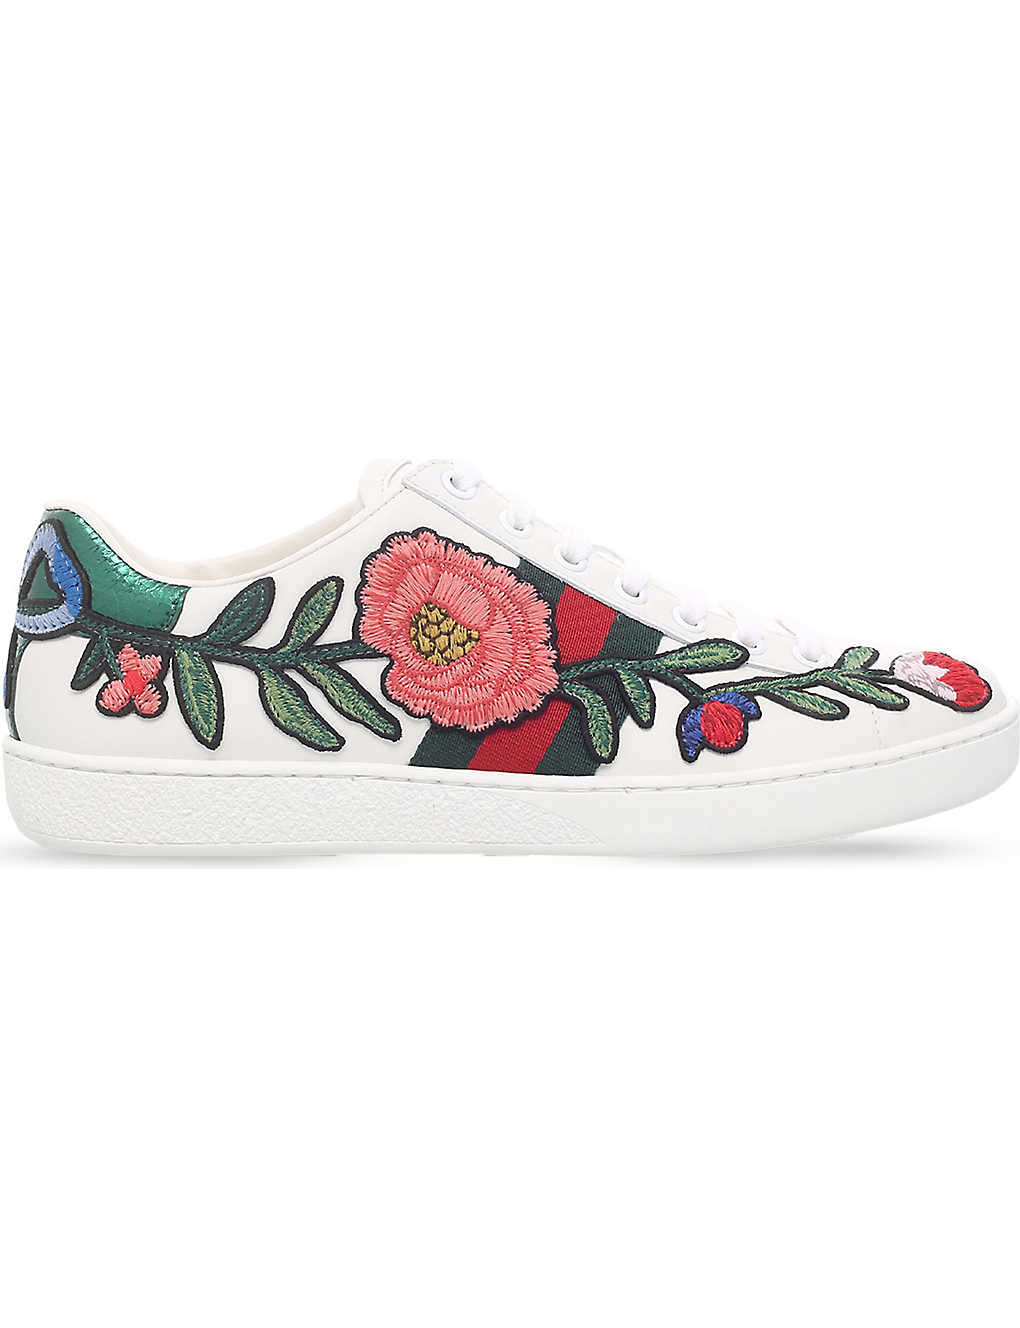 9c1b5a0c4c8 New Ace floral embroidered leather trainers - Whitered ...